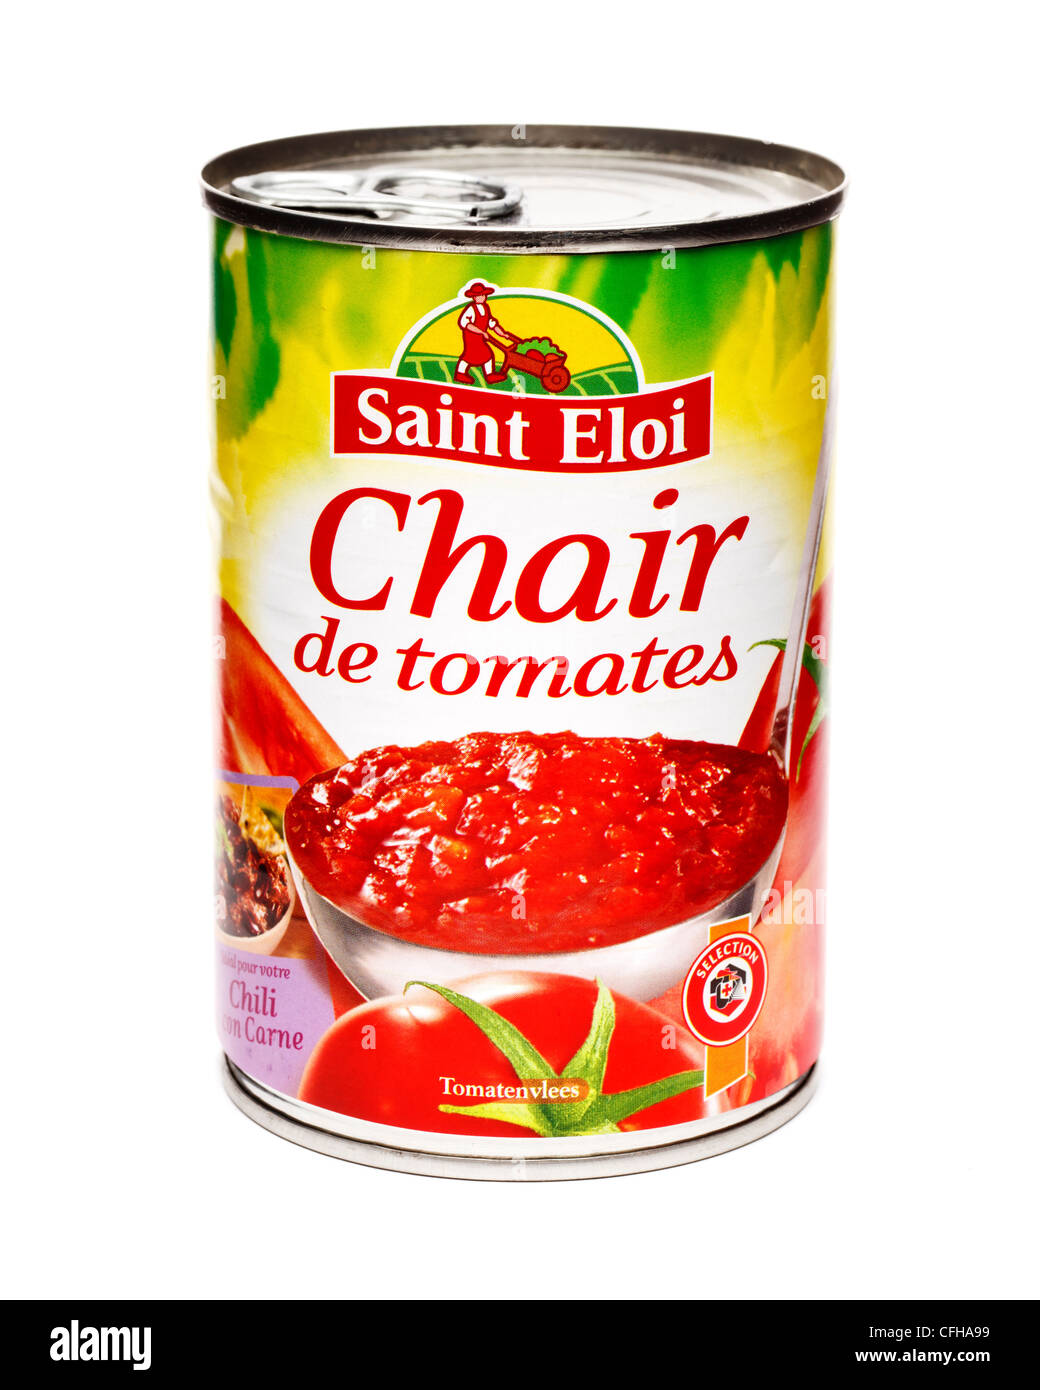 French tin of chopped tomatoes - Stock Image